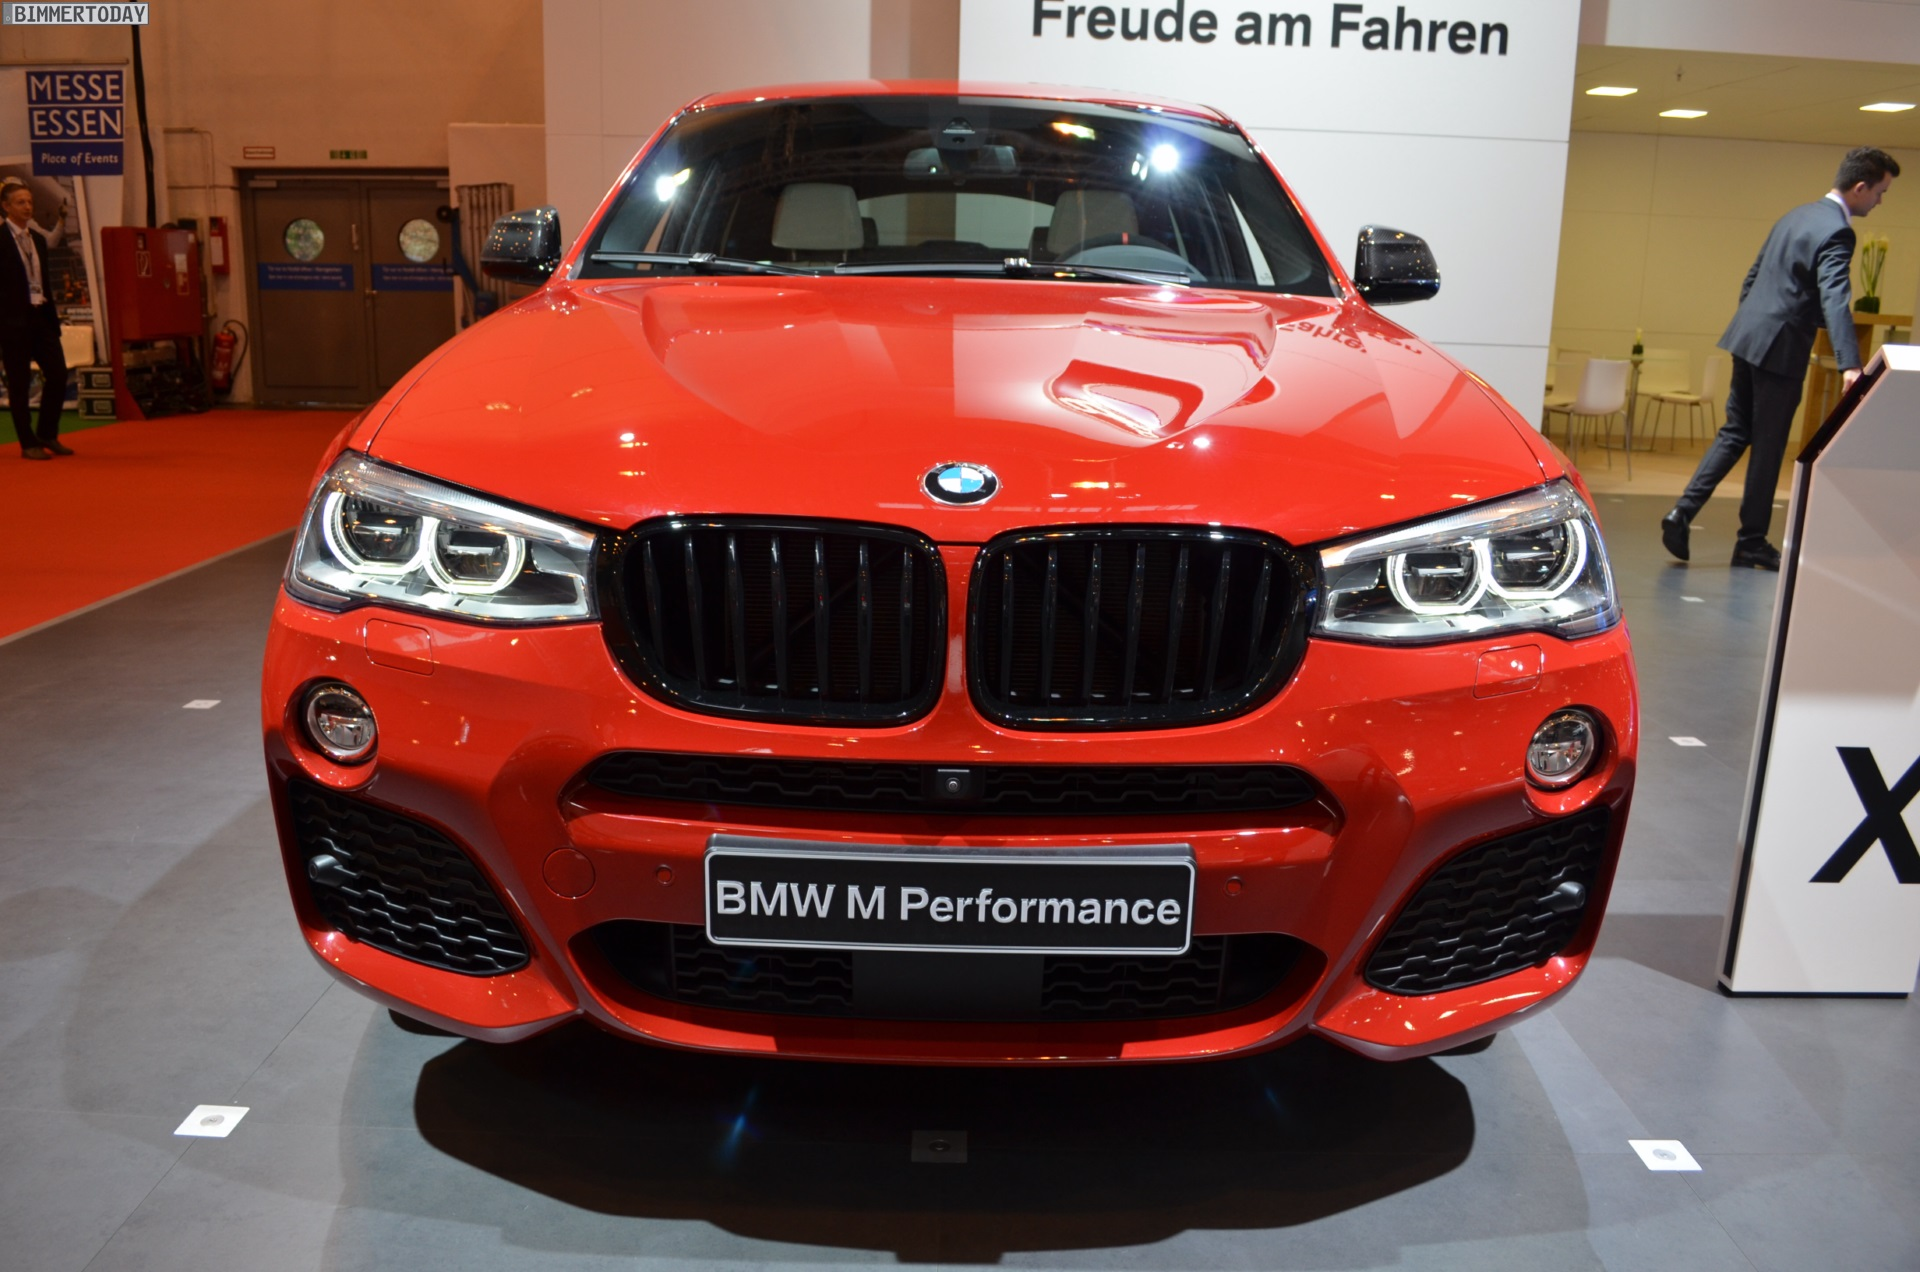 bmw m performance tuning for the bmw x4 at 2014 essen motor showbmwblog · auto shows · bmw european delivery · interesting